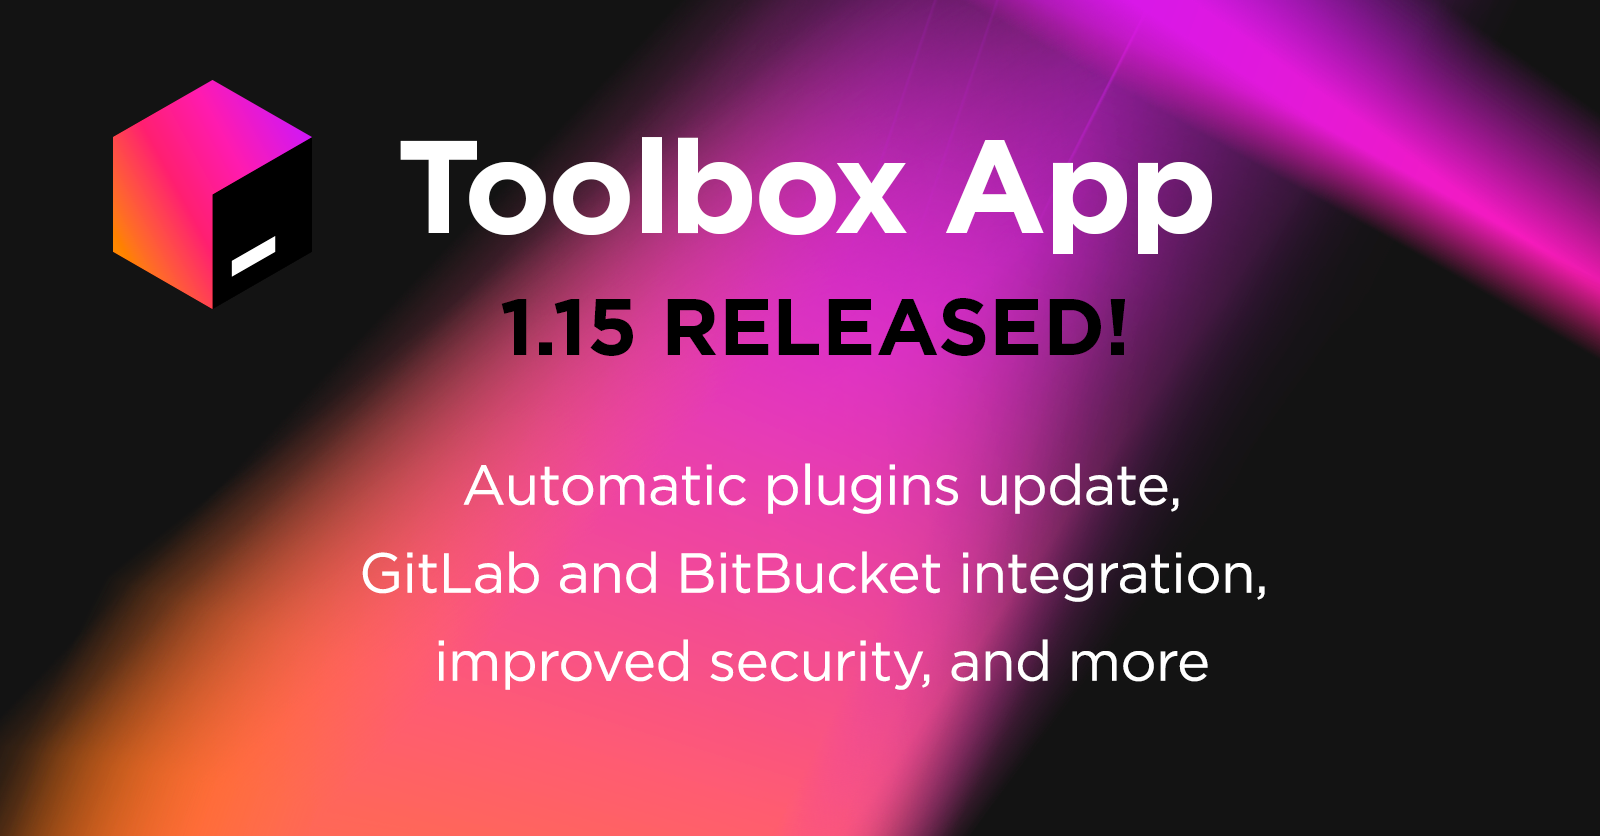 Toolbox App 1.15 is released